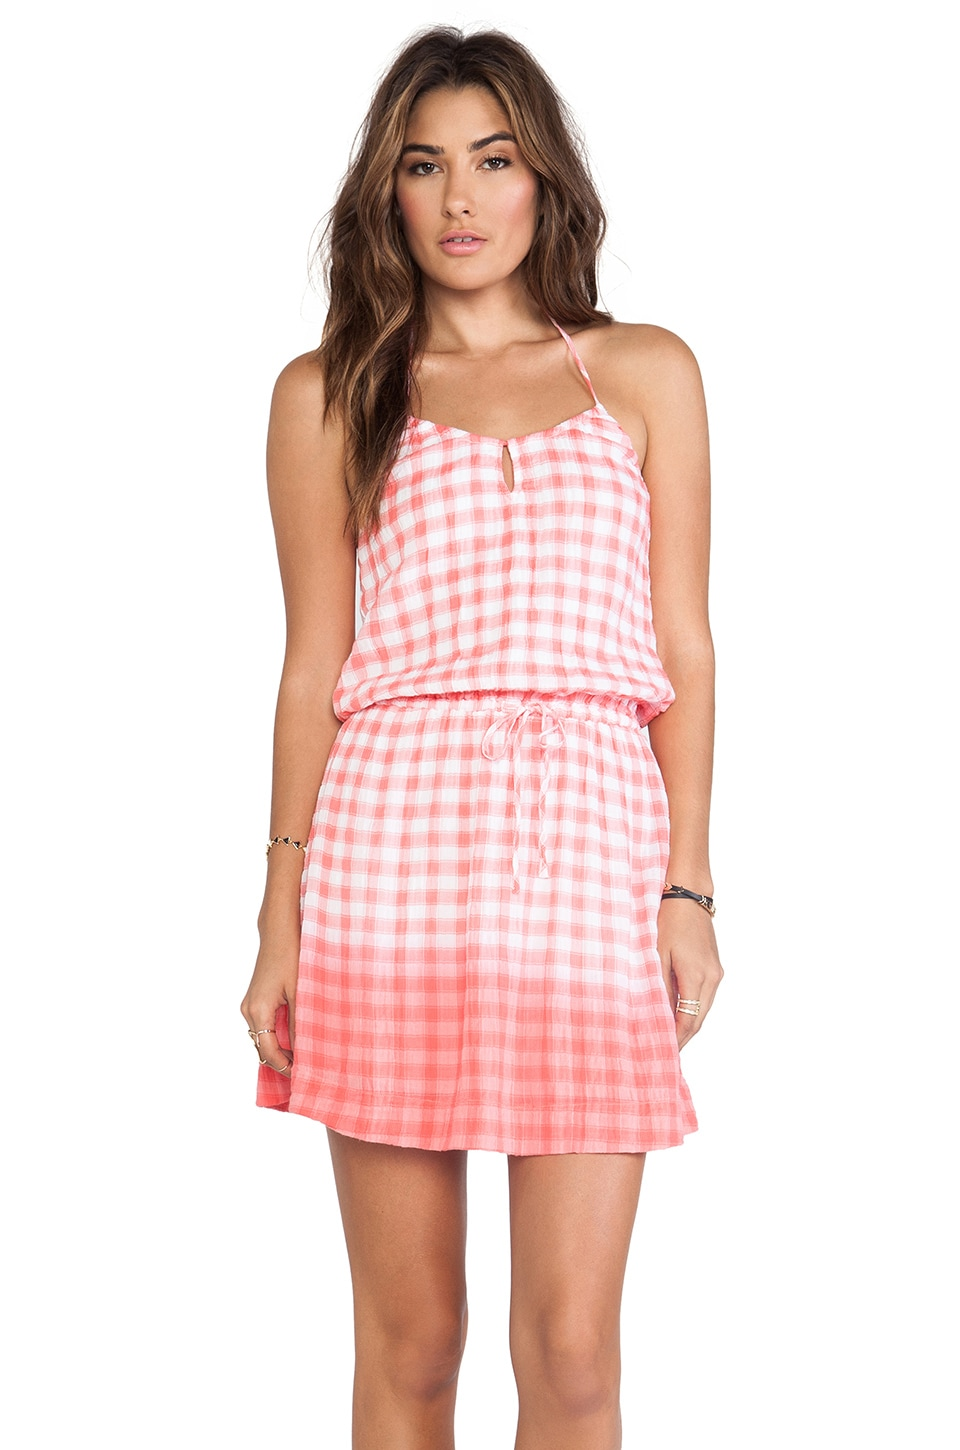 C&C California Dip Dye Gingham Dress in Gumball Pink